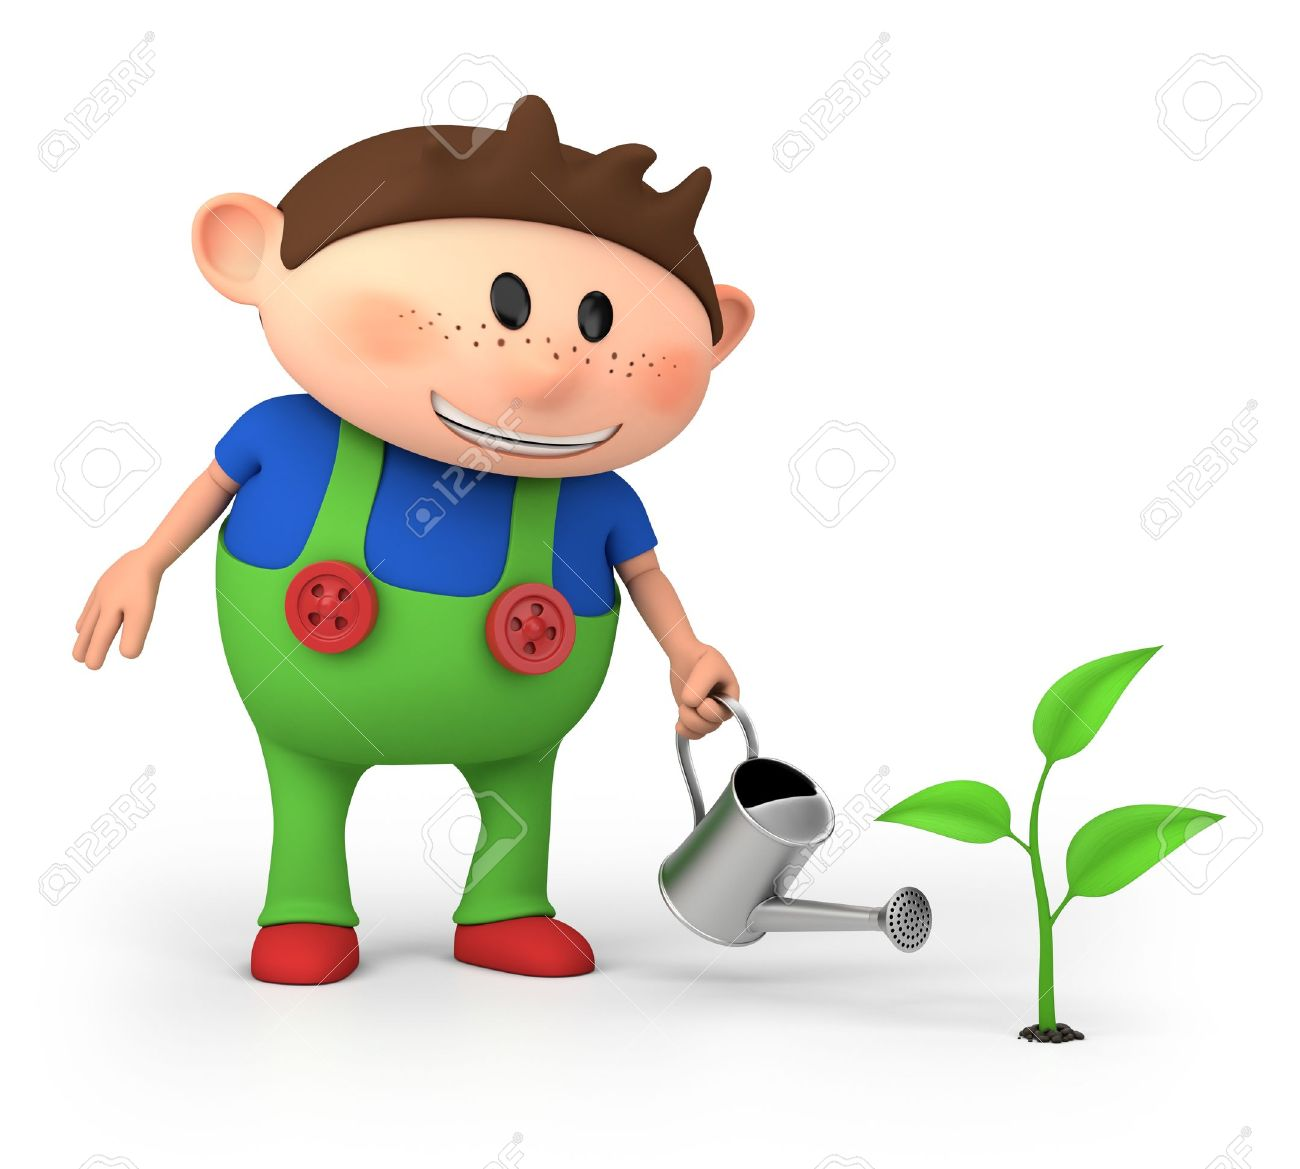 cute little cartoon boy watering sprout - high quality 3d illustration - 13097700